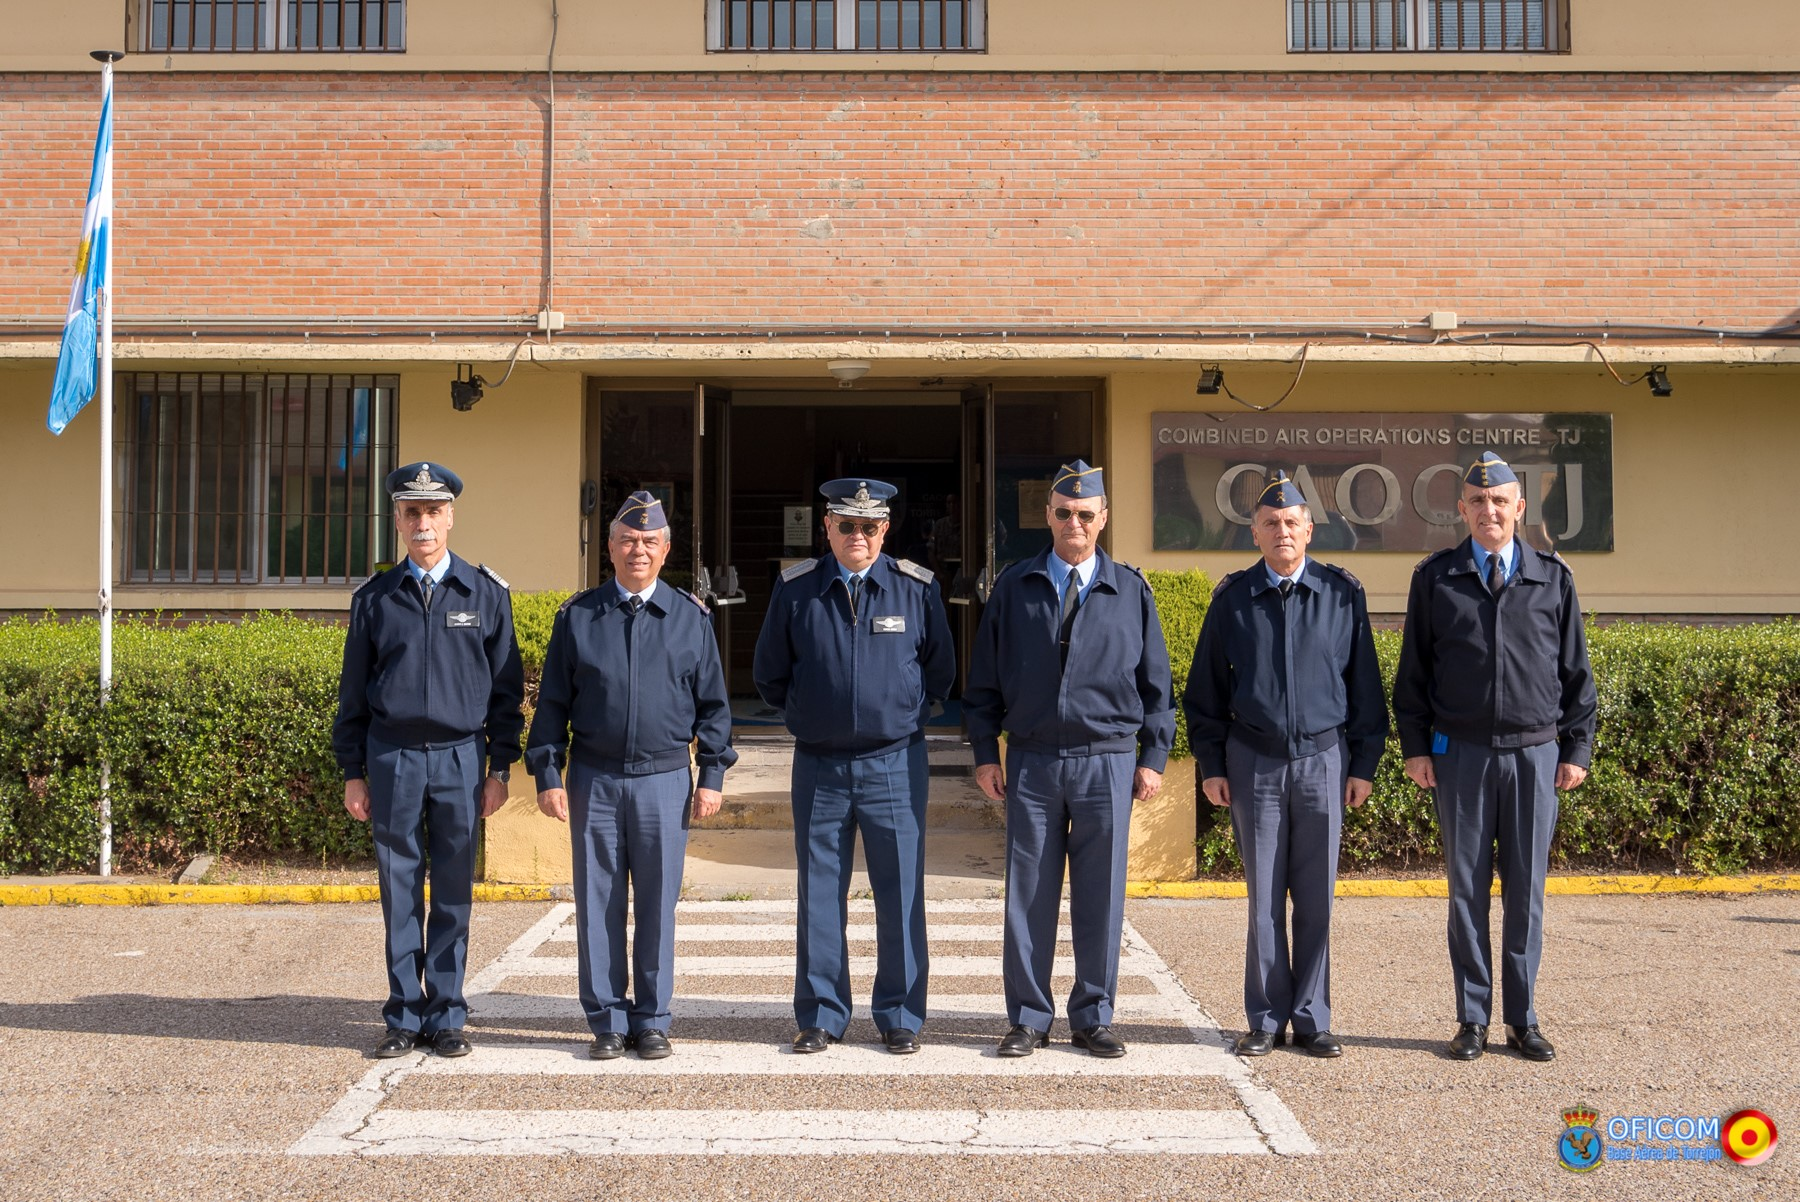 The Chief of the General Staff of the Argentinian Air Force visits the Combined Air Operations Centre in Torrejón